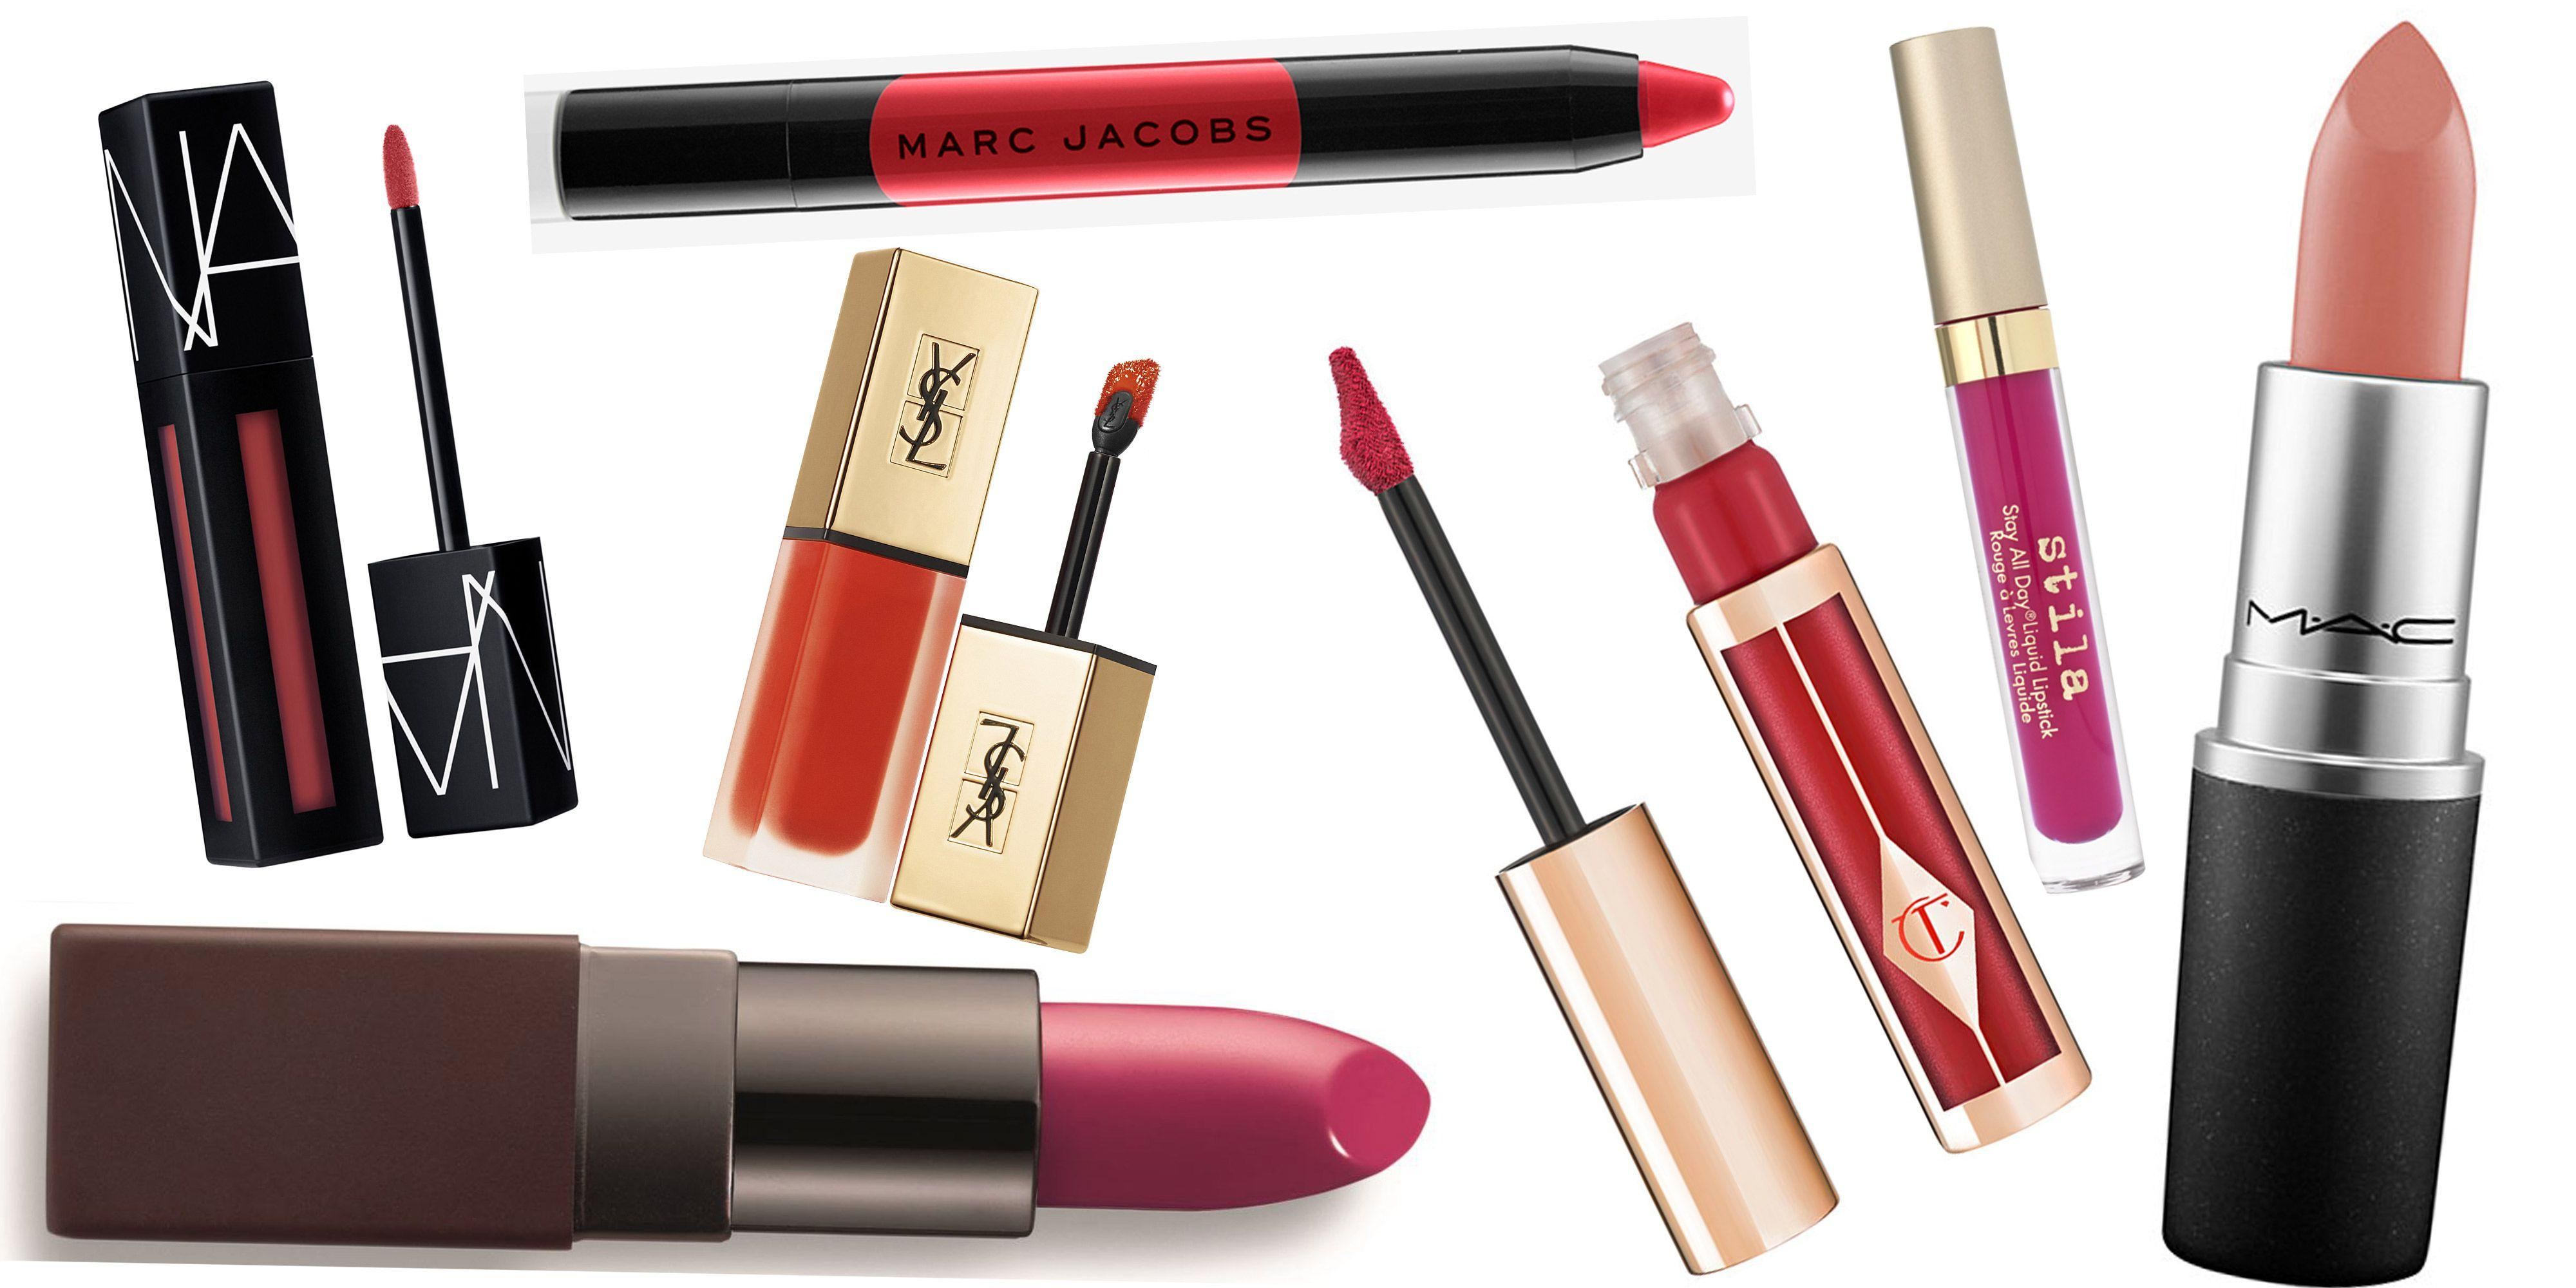 8 of the best kiss-proof lipsticks